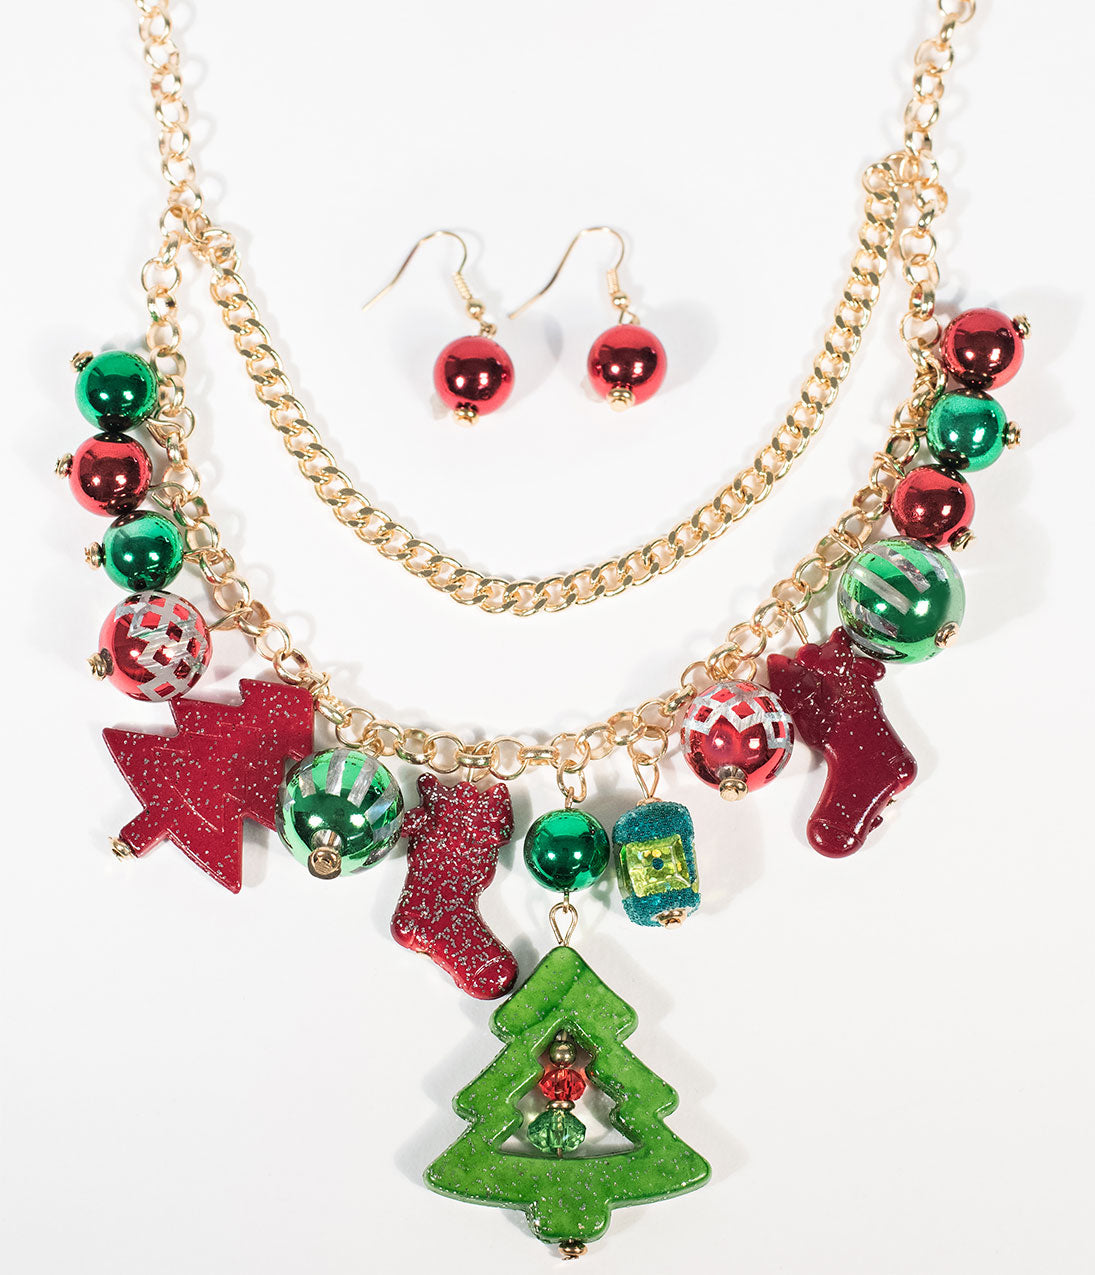 Vintage Christmas Dress | Party Dresses | Night Out Outfits Red  Green Ugly Christmas Necklace  Earrings $18.00 AT vintagedancer.com